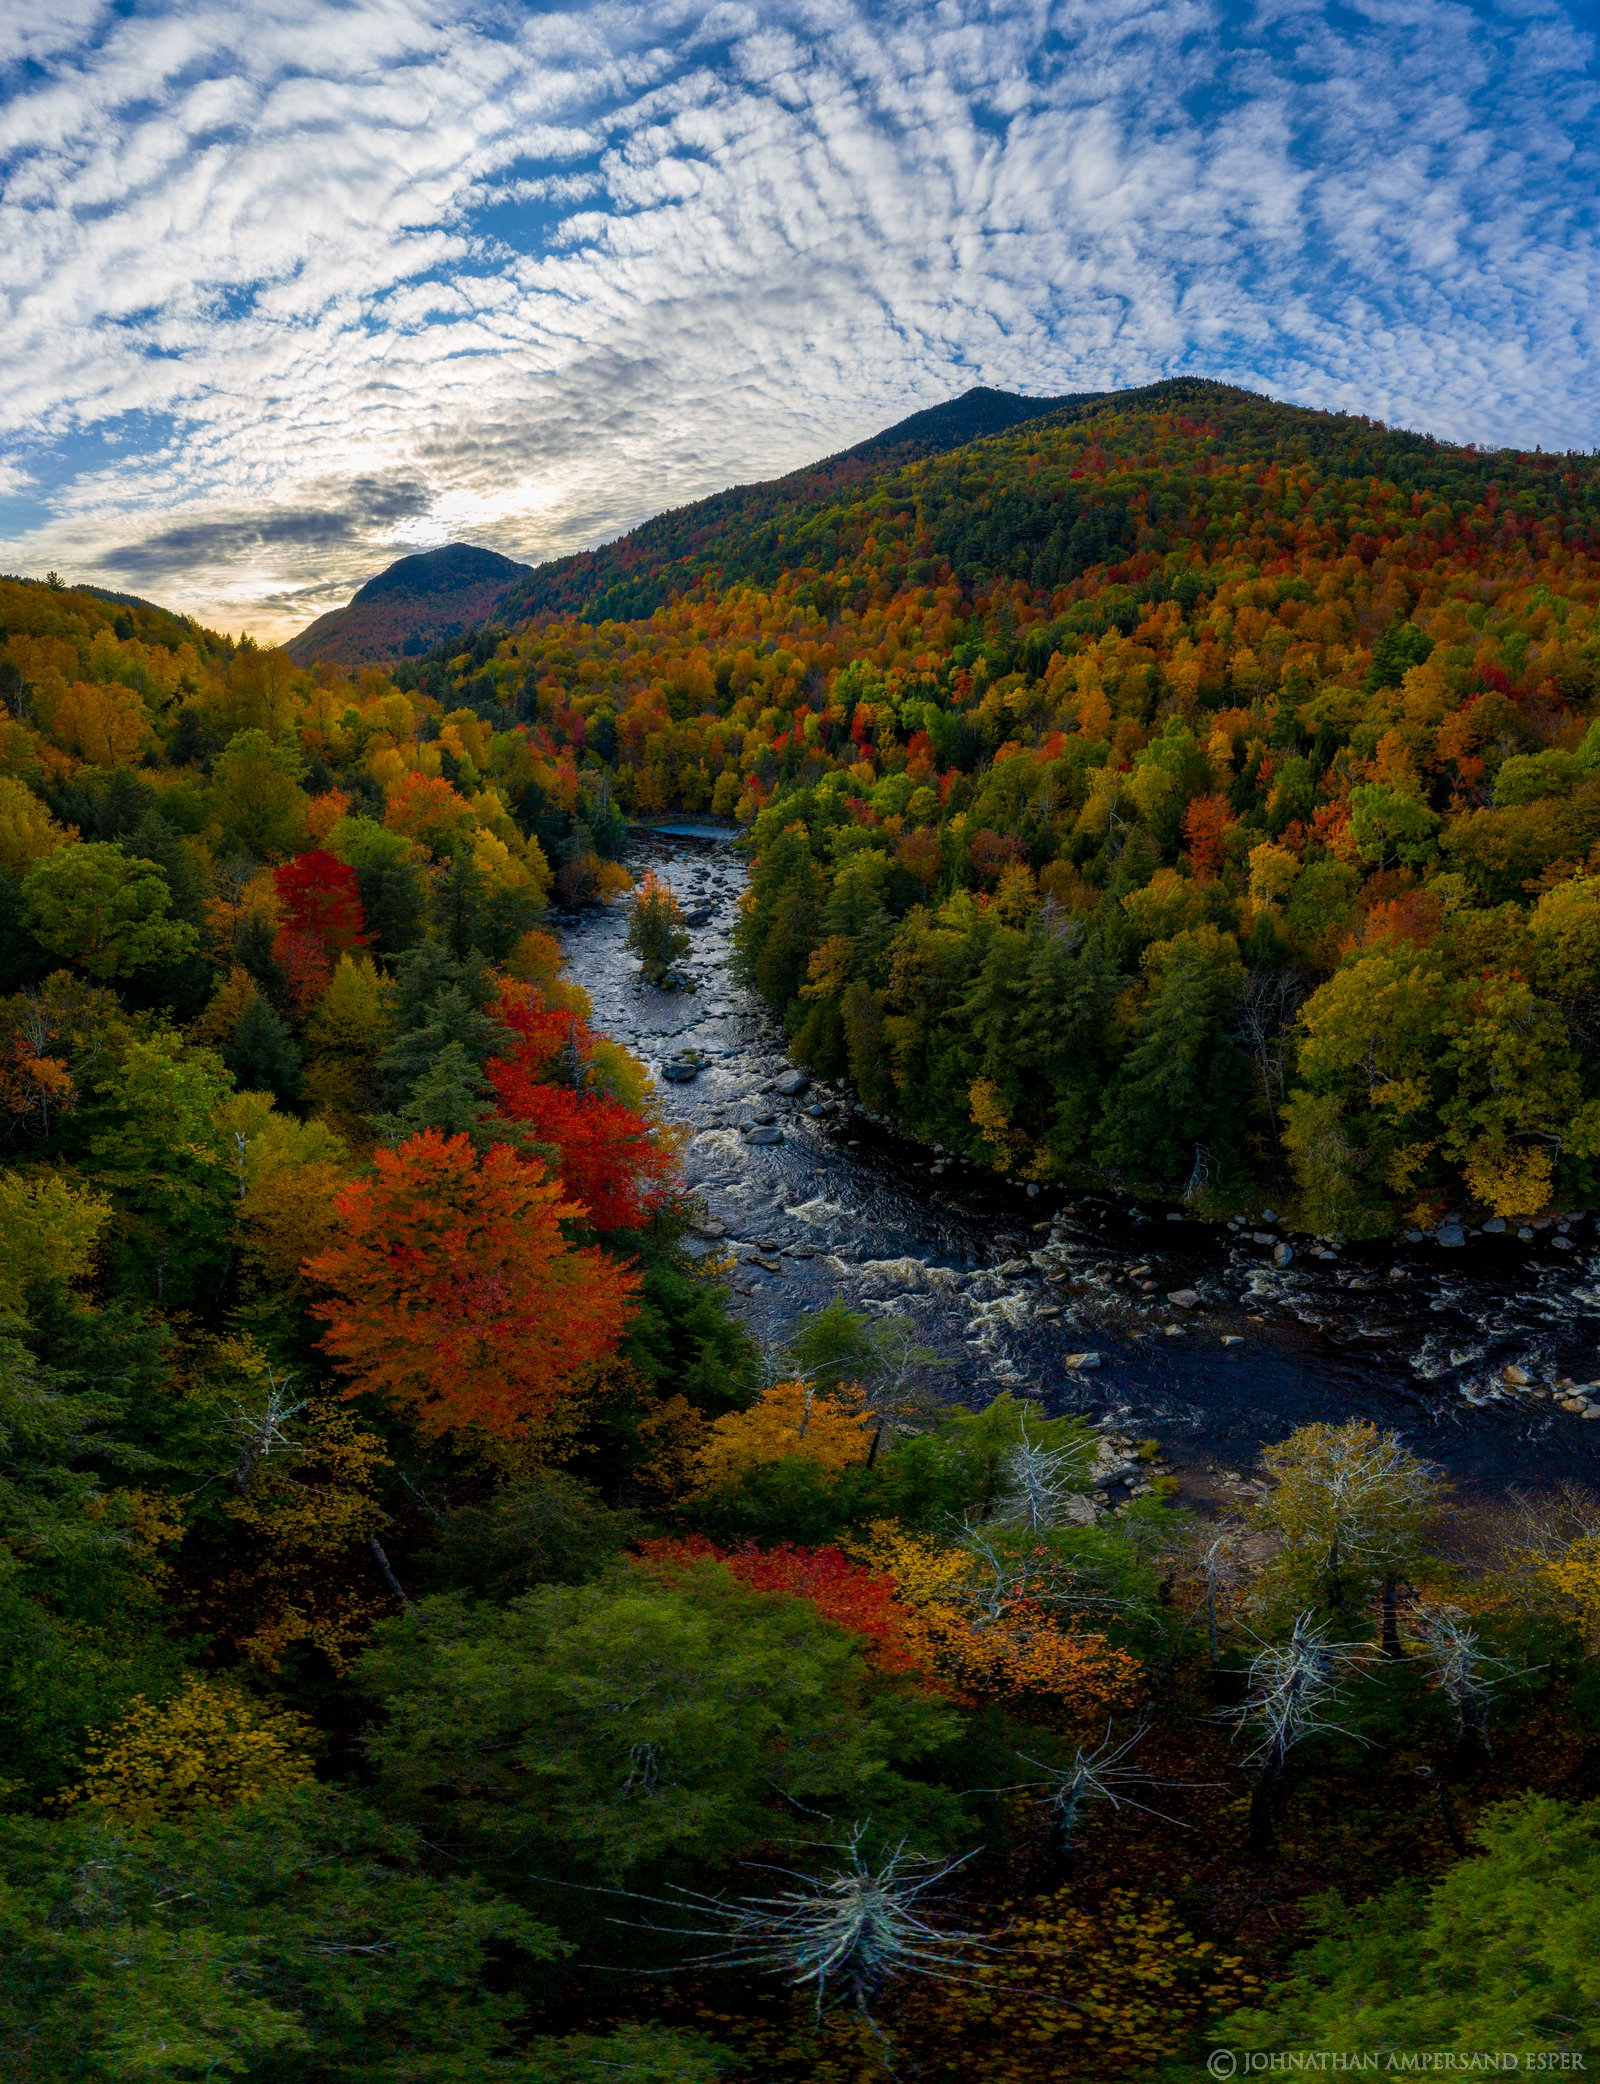 High Falls Gorge,Whiteface Mt,Whiteface,Whiteface Mountain,Ausable River,AuSable River,drone,vertical,vertical panorama,fall...